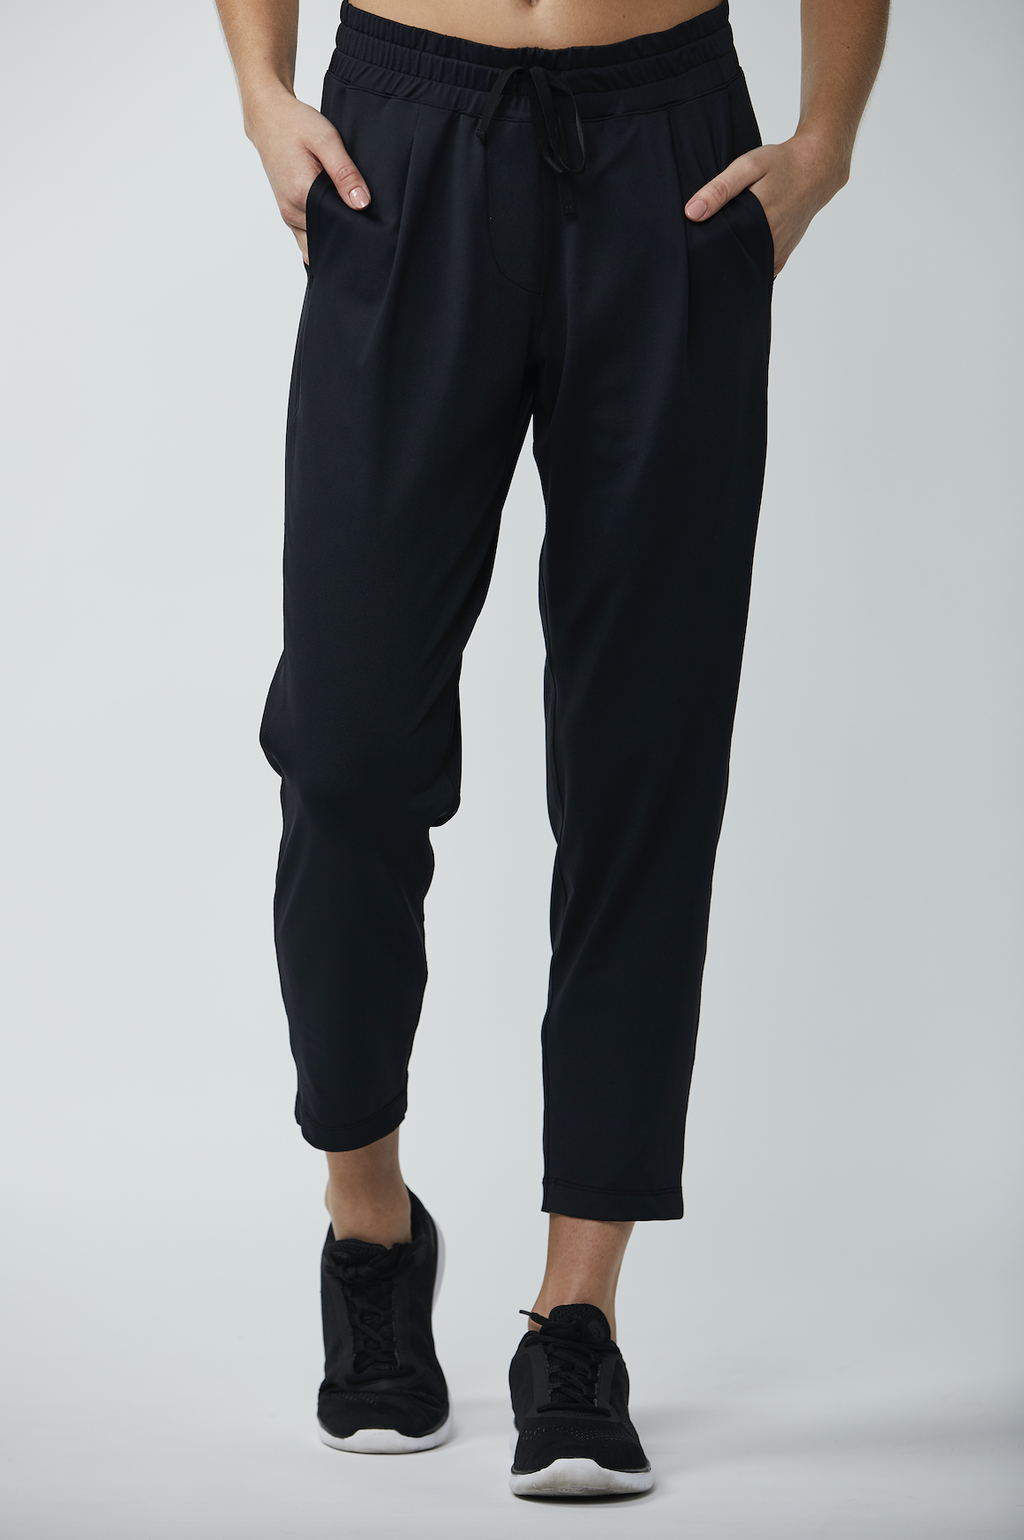 Stretch Street Pant - Final Sale